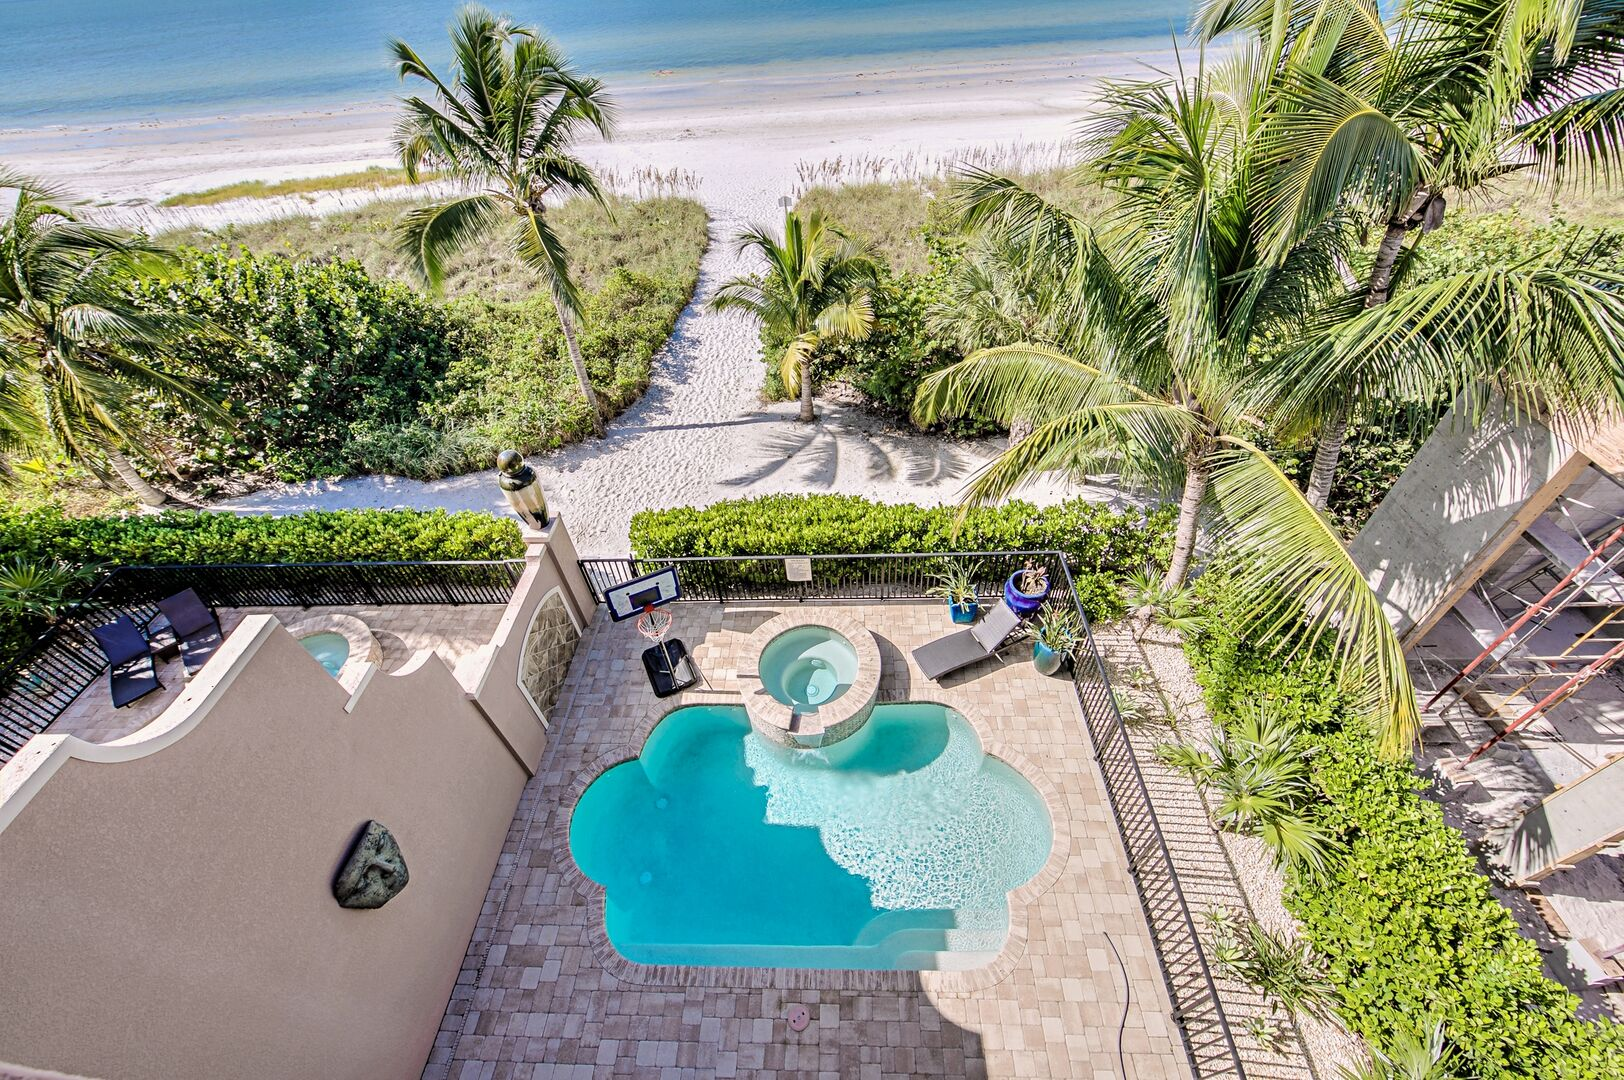 View of the Private Pool and Jacuzzi from the Balcony.